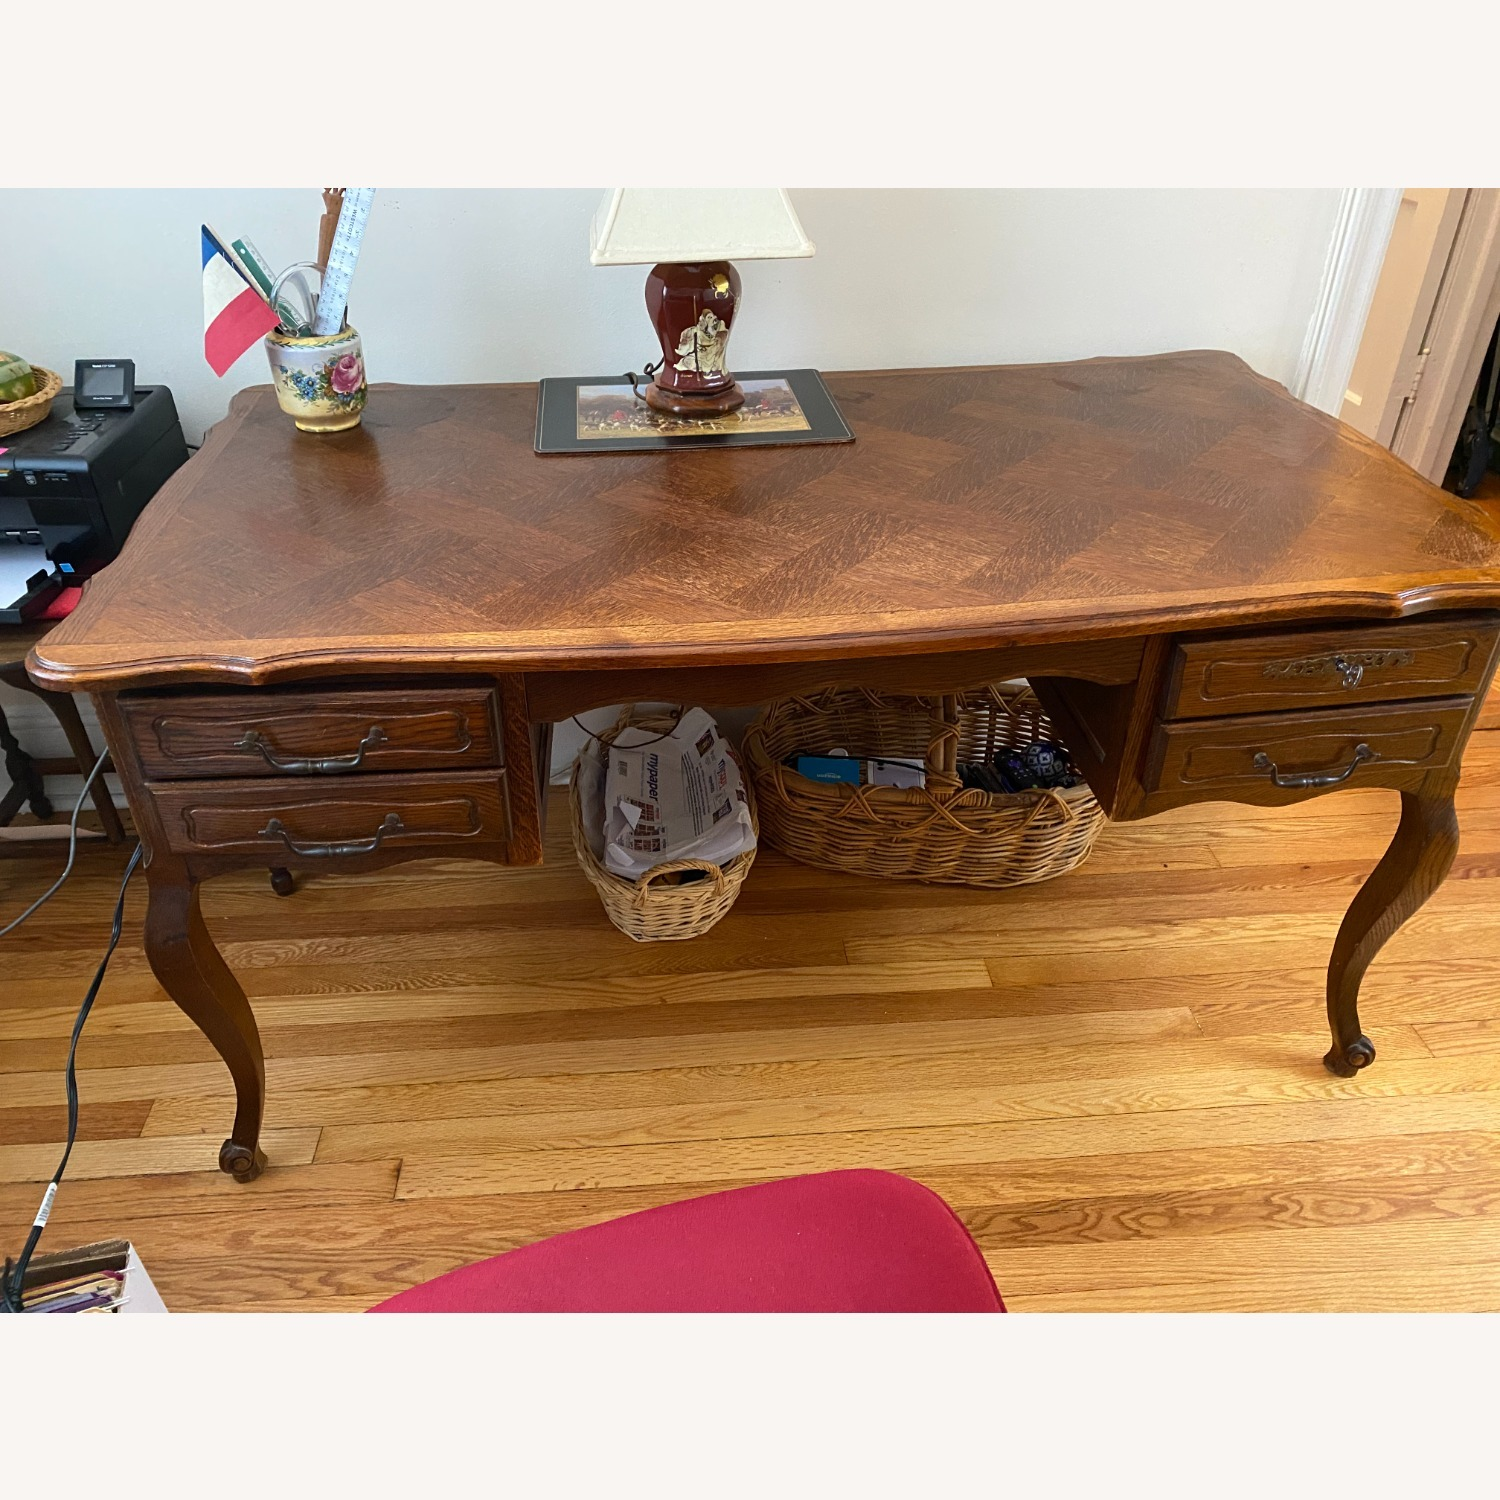 French Provincial Louis XV style Desk Cherry Wood - image-1